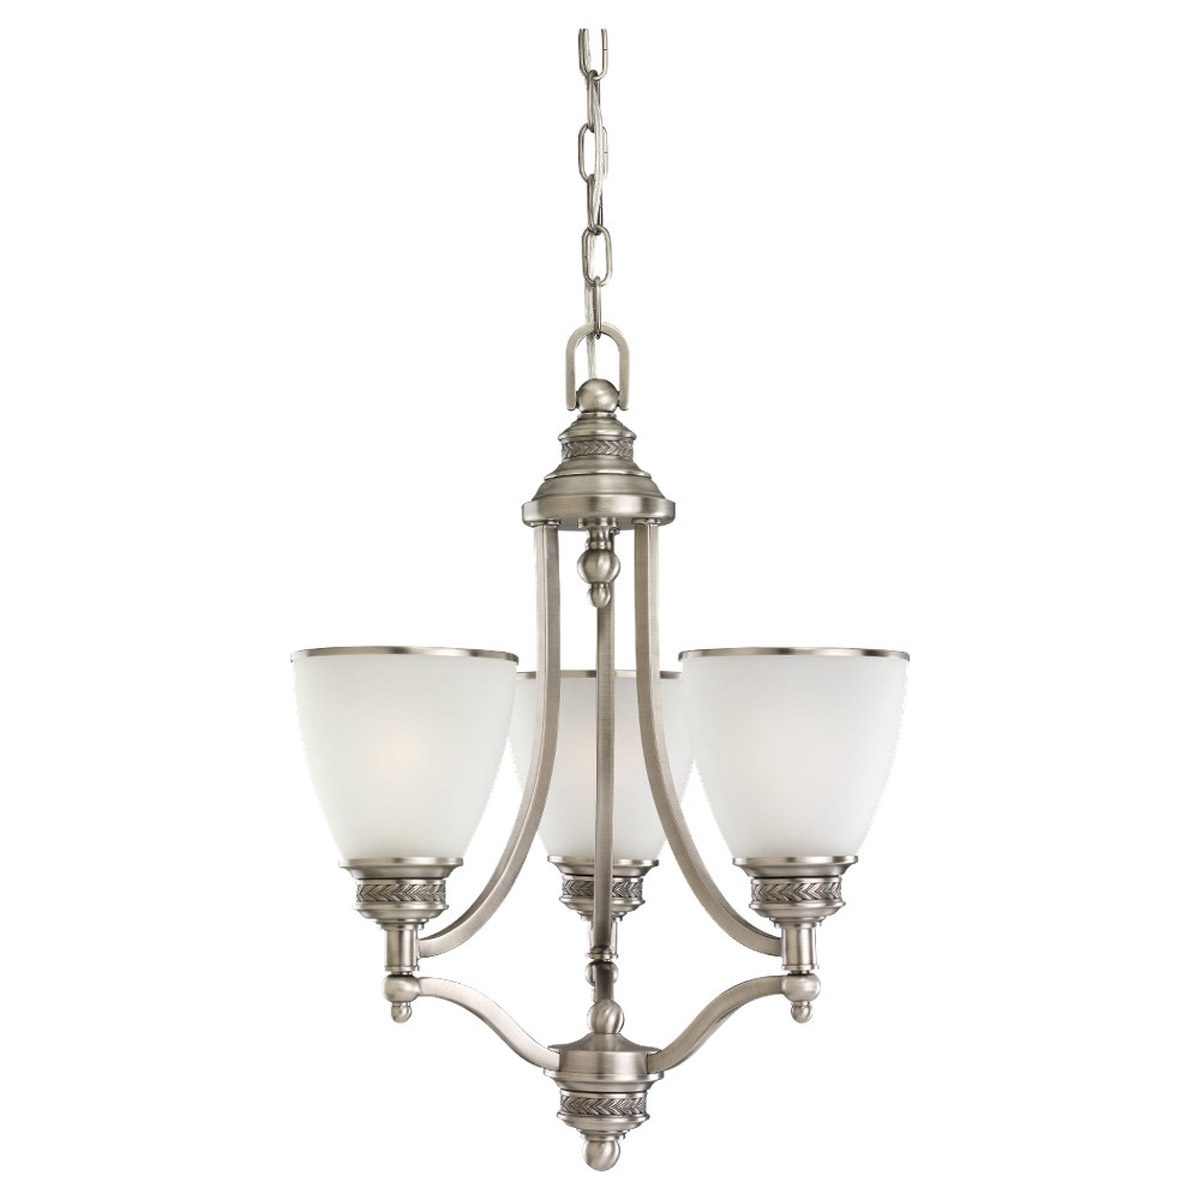 Sea Gull Lighting Laurel Leaf 3 Light Chandelier in Antique Brushed Nickel 31349-965 photo